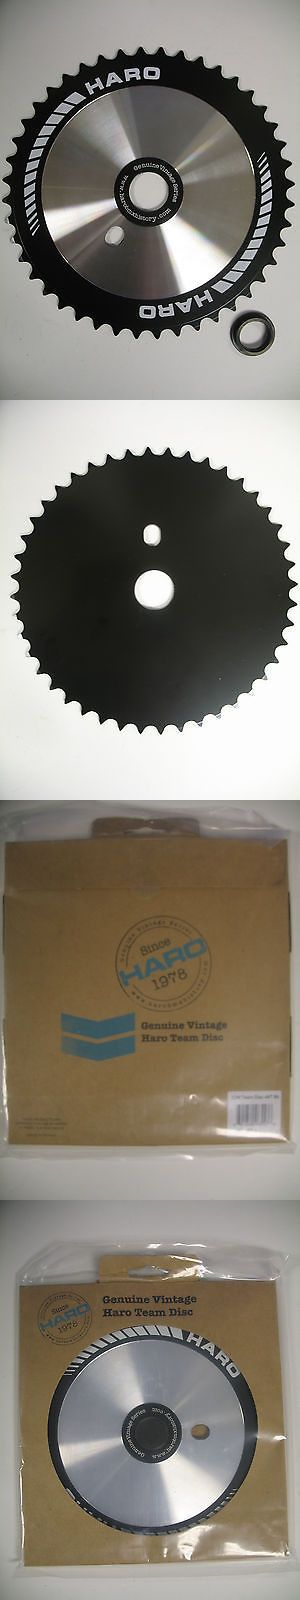 Chainrings and BMX Sprockets 177811: Haro Team 44T Bmx Sprocket Chainwheel Black Compact Disc Repop Vintage BUY IT NOW ONLY: $45.0